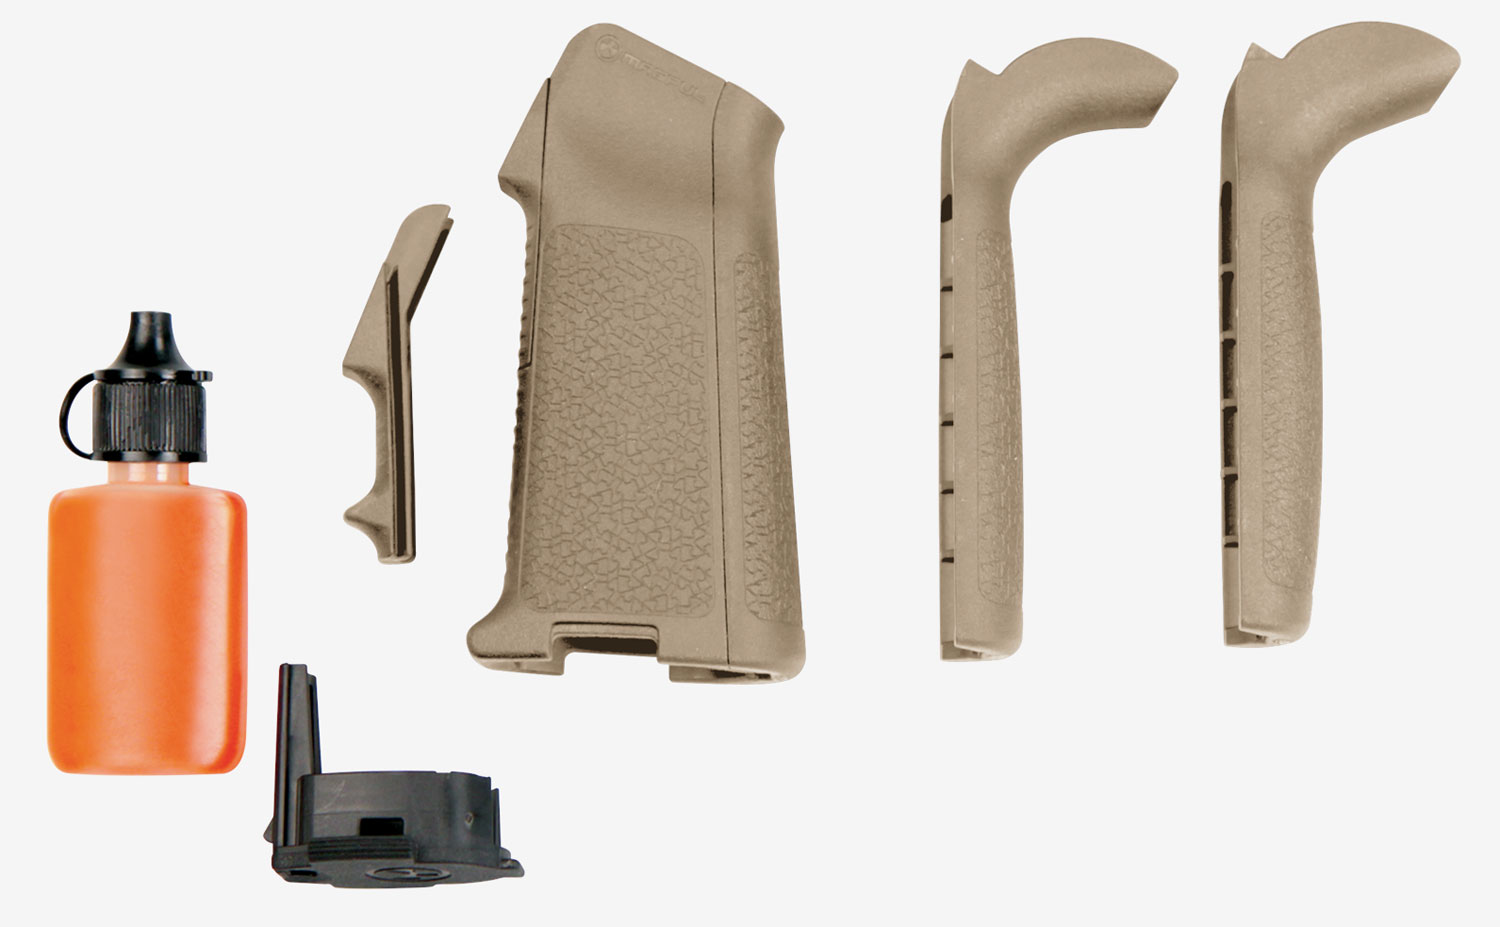 Magpul MAG520-FDE MIAD Gen 1.1 Grip Kit Pistol Grip Aggressive Textured Polymer Flat Dark Earth